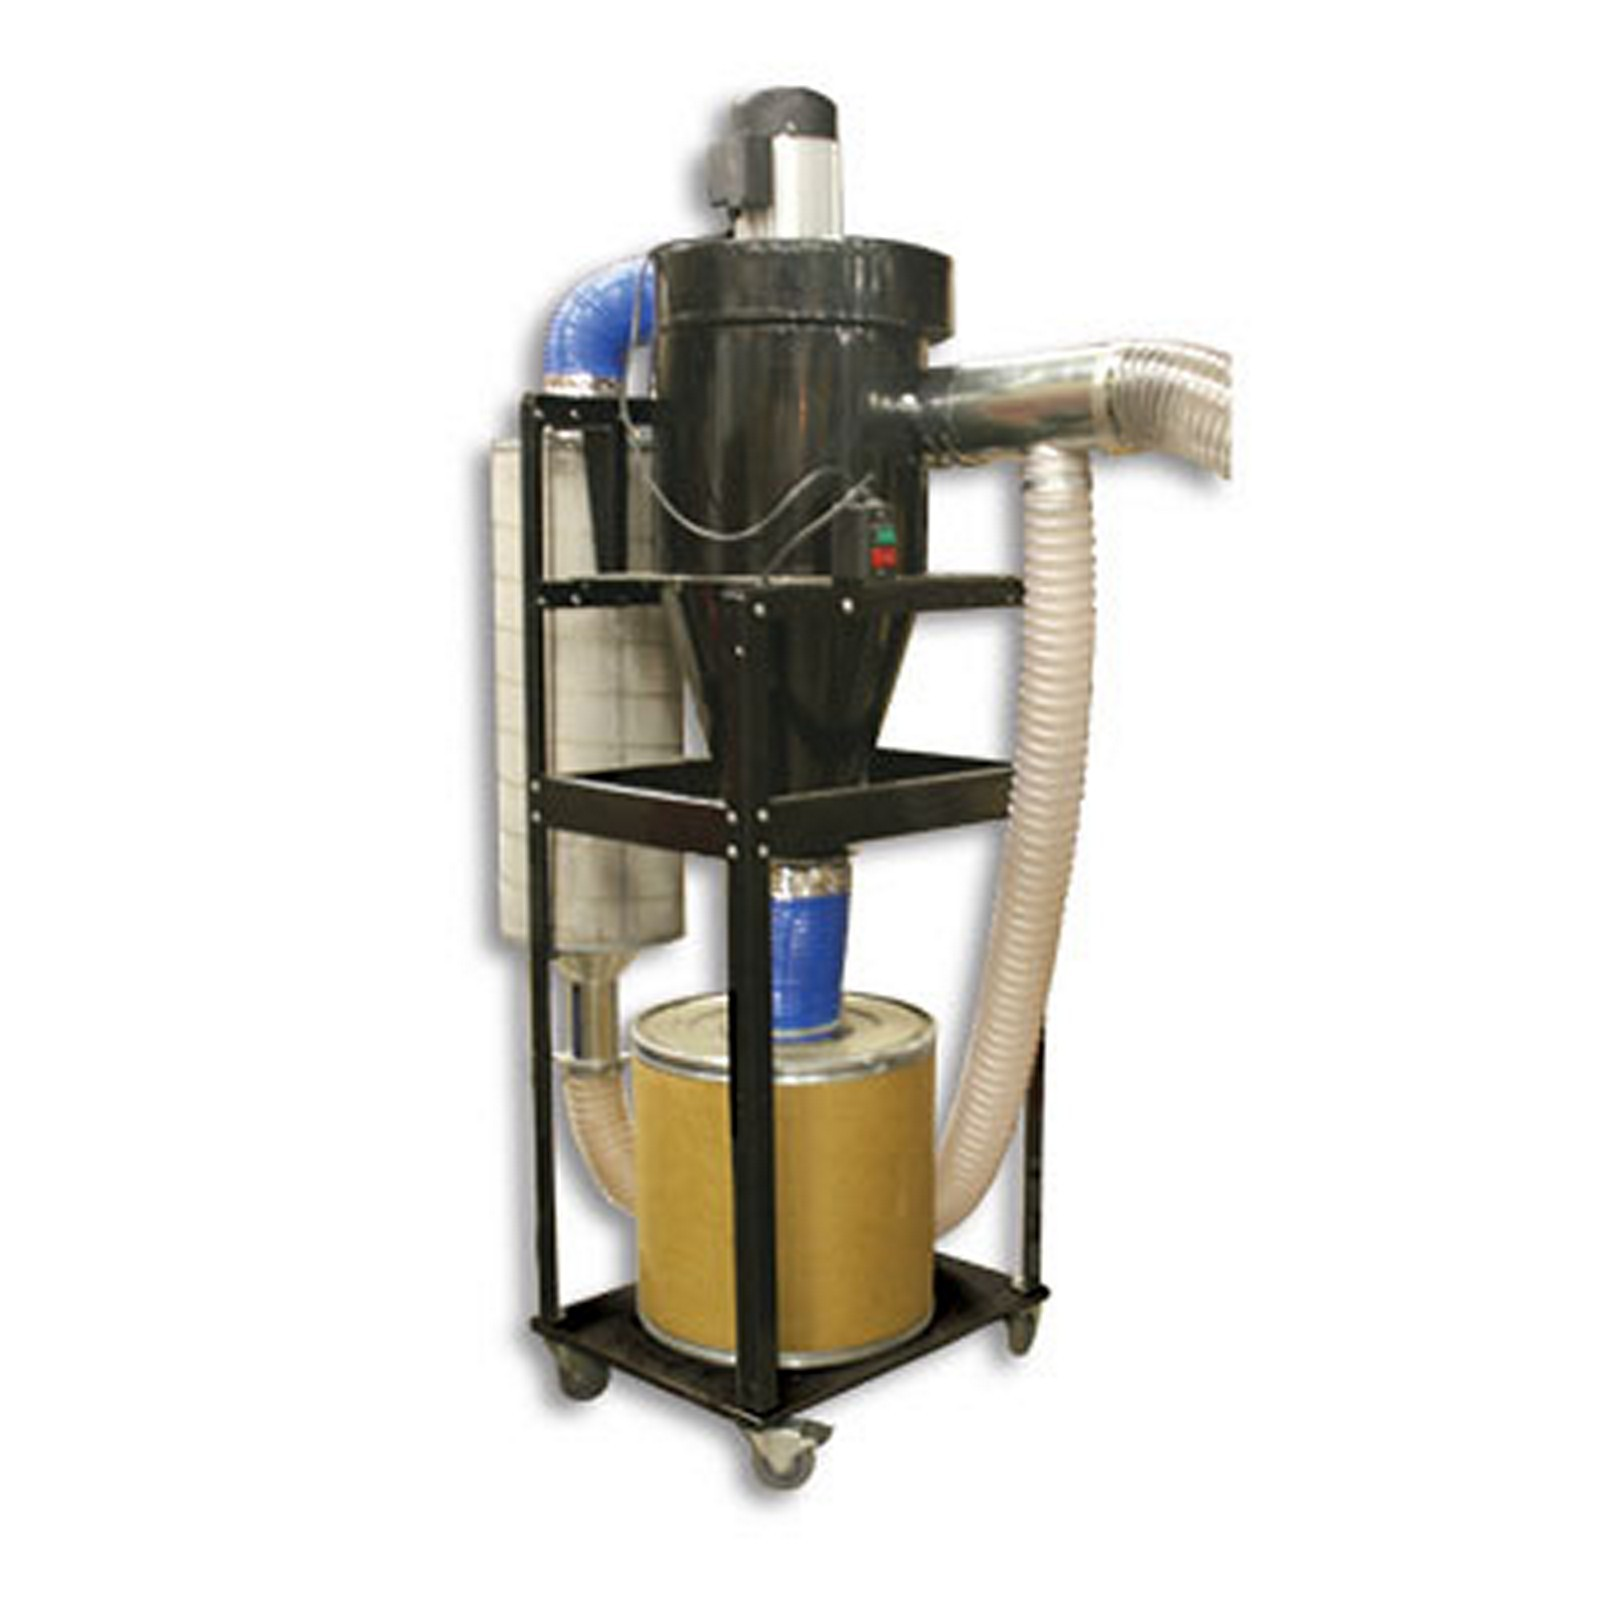 Tempest Portable 2hp Cyclone Dust Collector Item # Temp2pcx